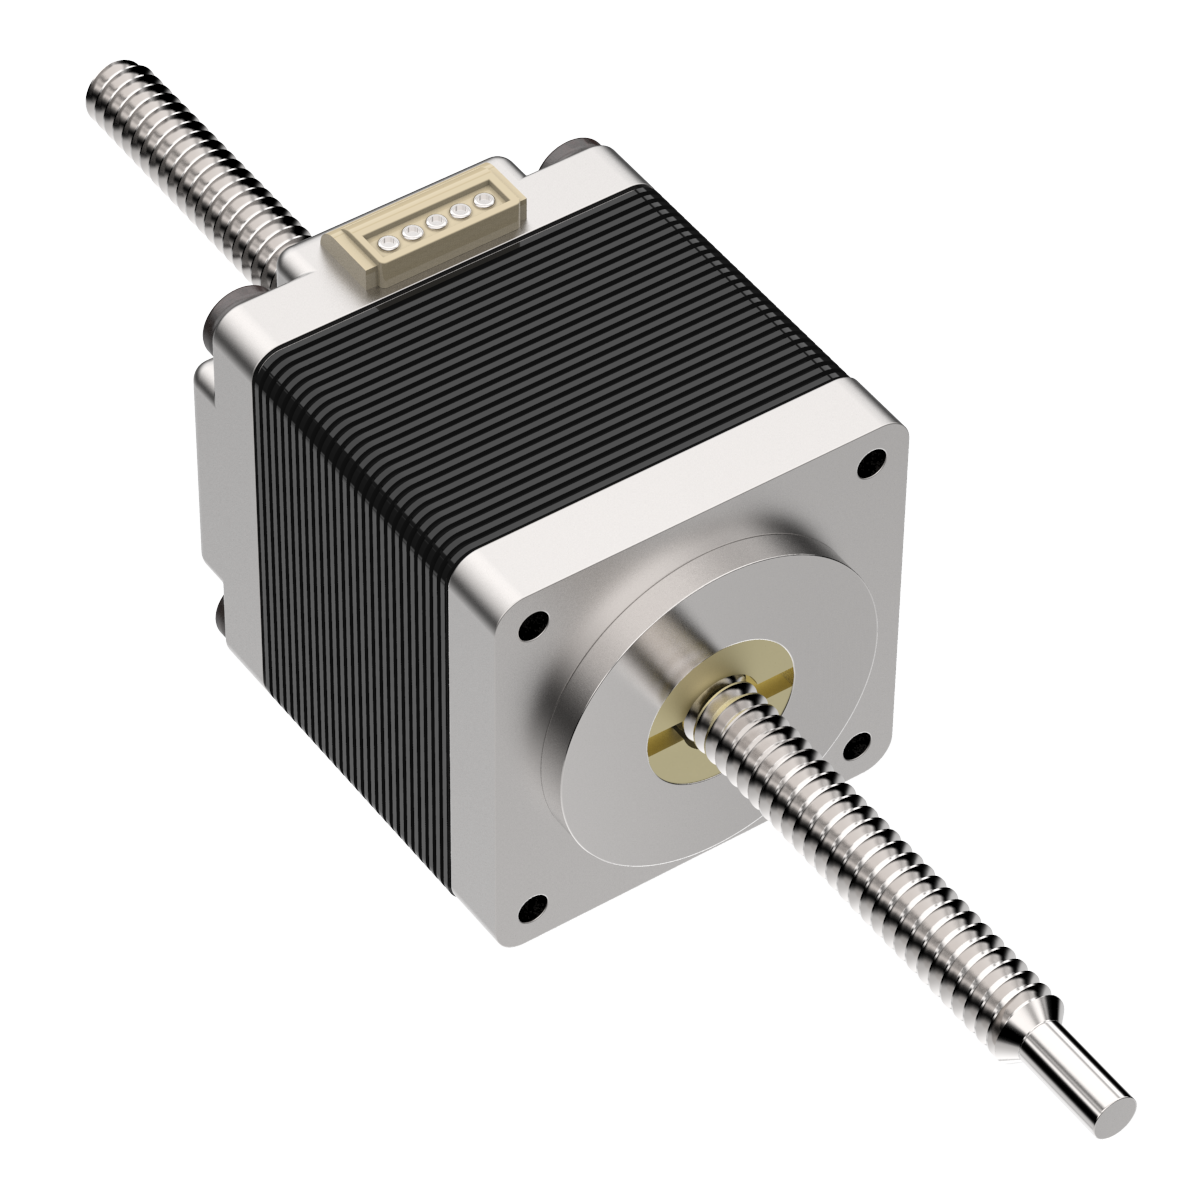 Stepper Motor Linear Actuator - Non-Captive - SMA-11DN-018050-12V